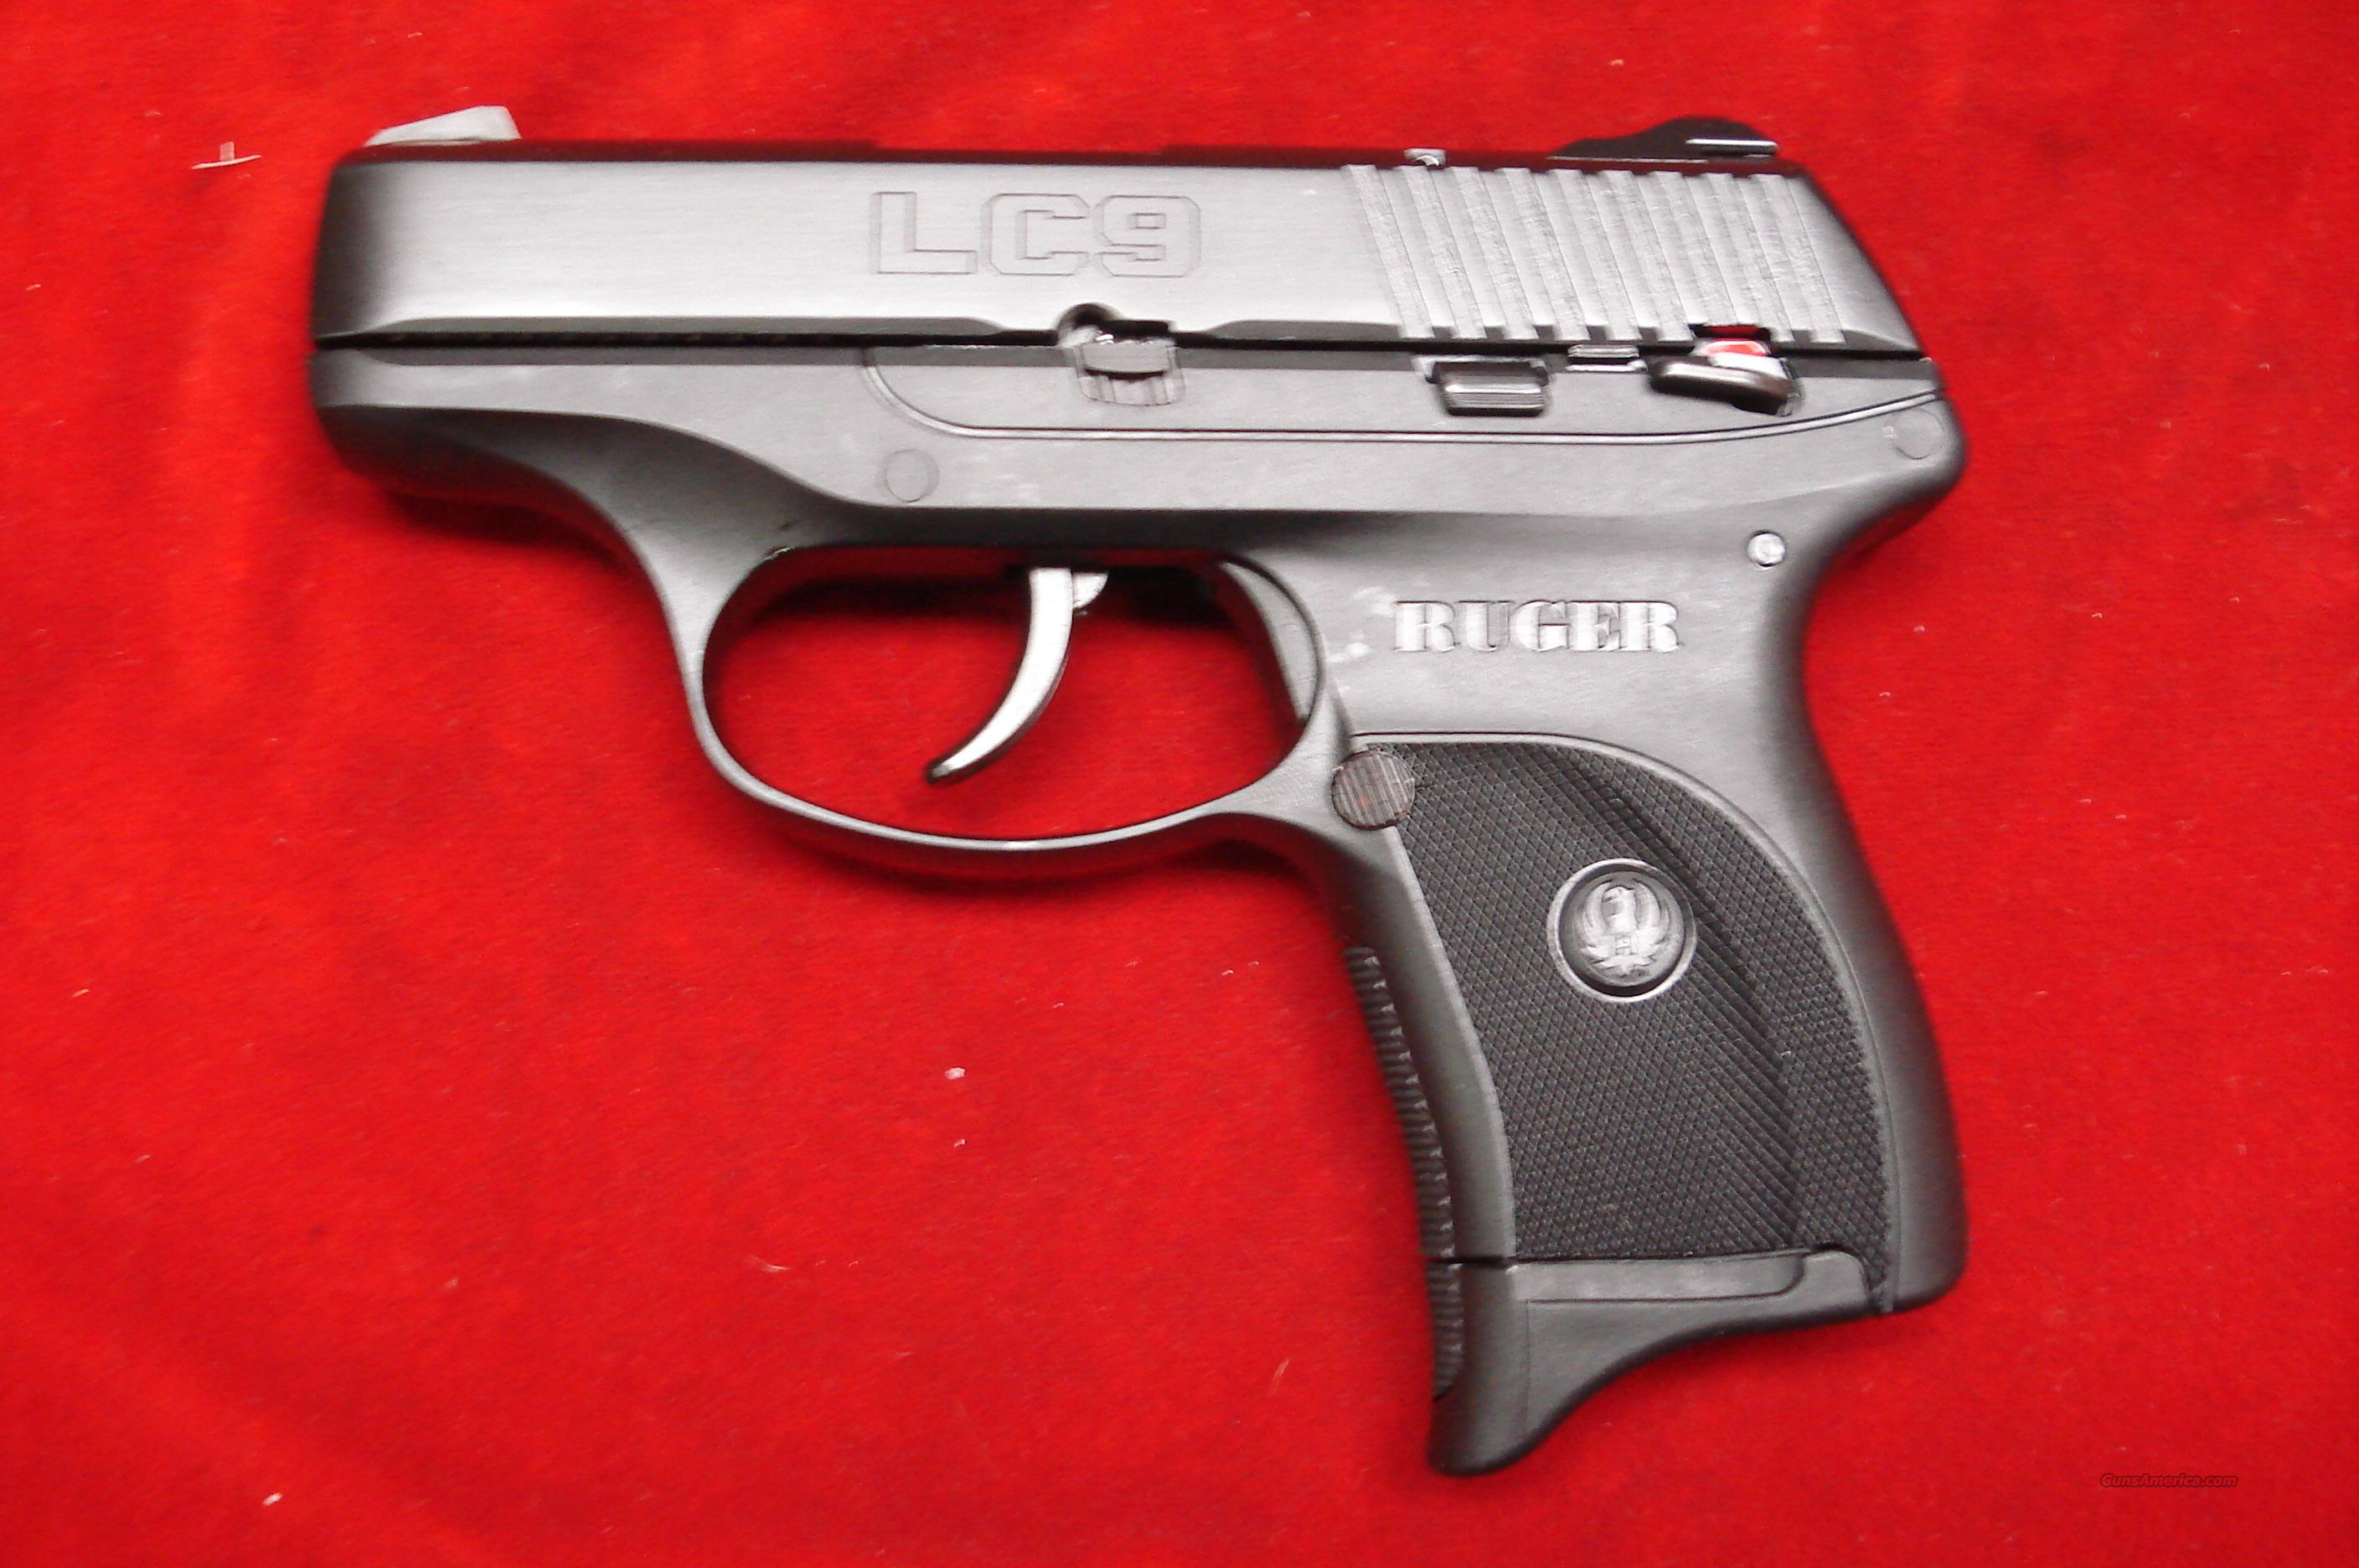 RUGER LC9  (Lightweight Compact nine) 9MM. NEW  Guns > Pistols > Ruger Semi-Auto Pistols > LCP